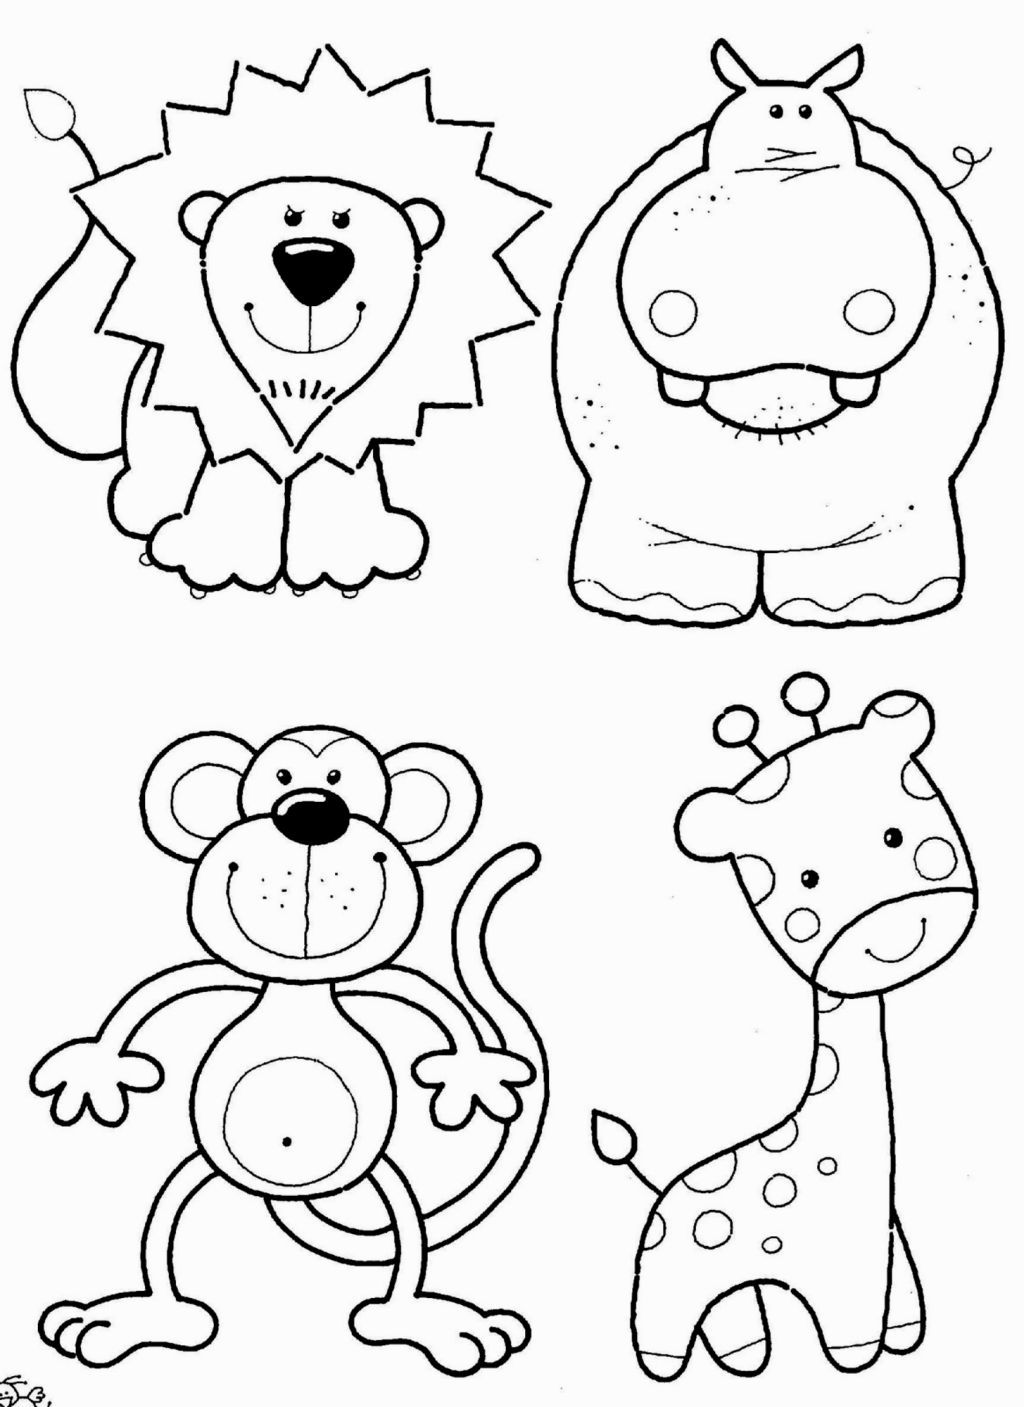 Animals coloring games